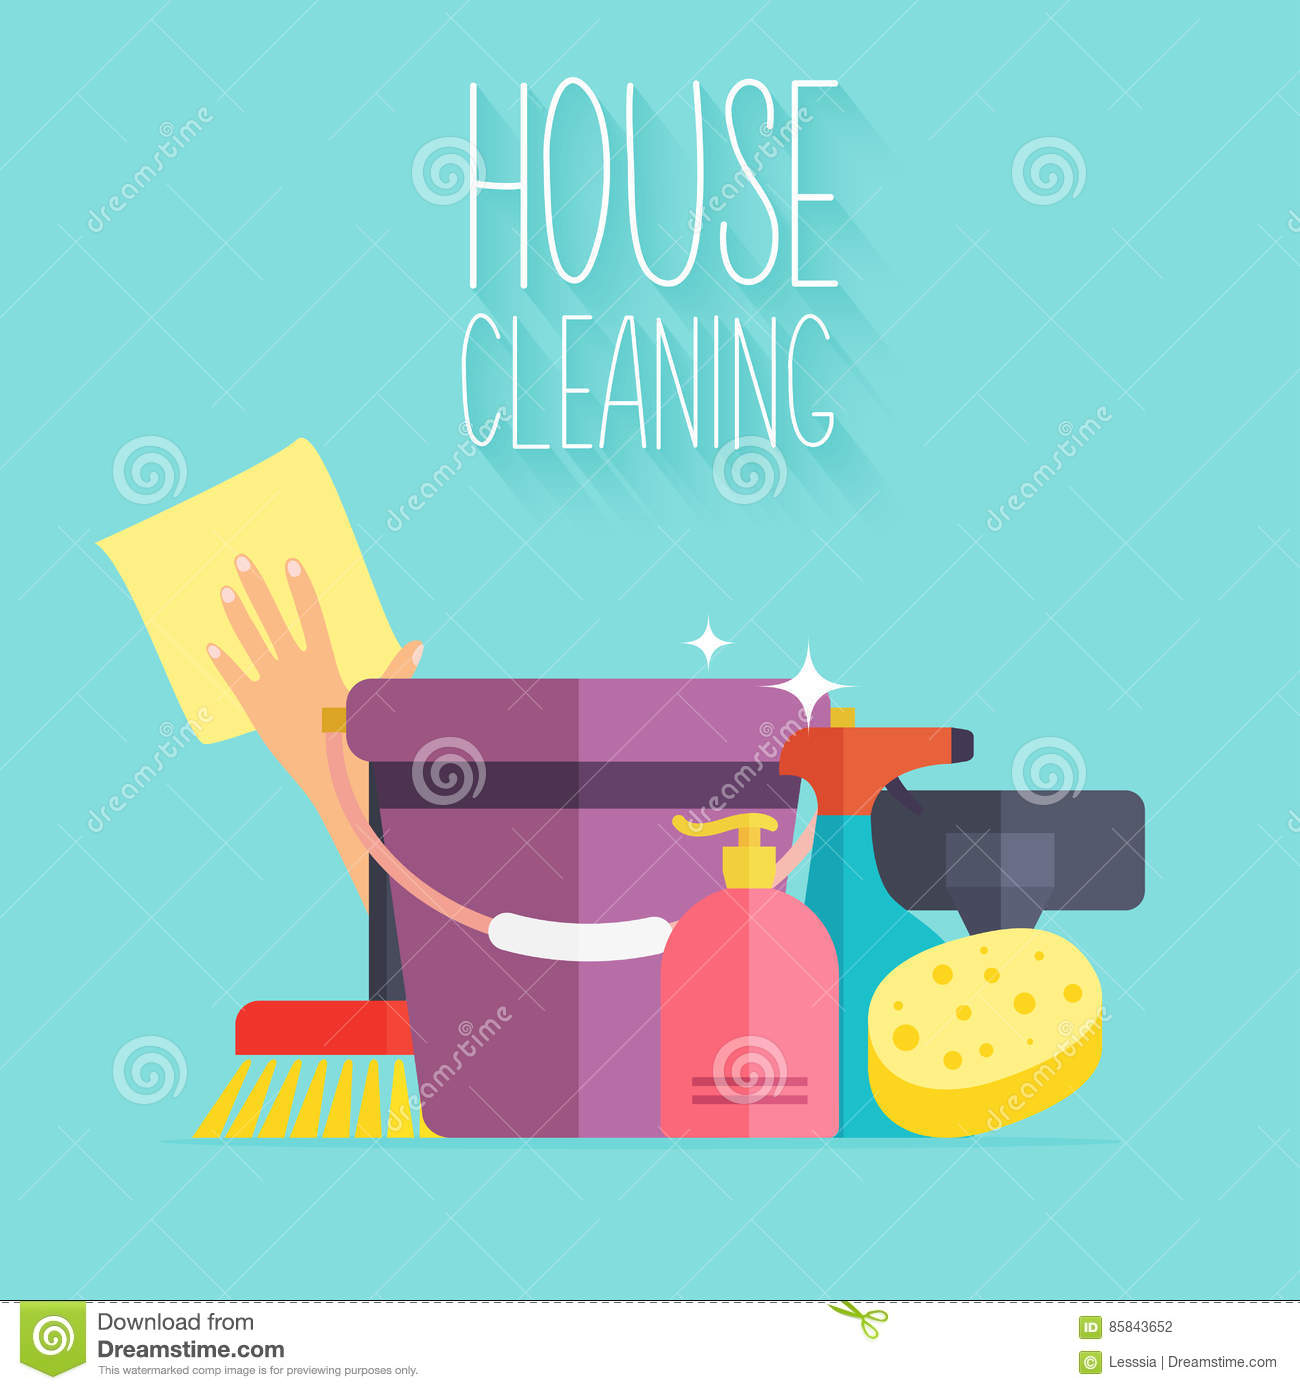 house cleaning poster template for house cleaning services house cleaning poster template for house cleaning services